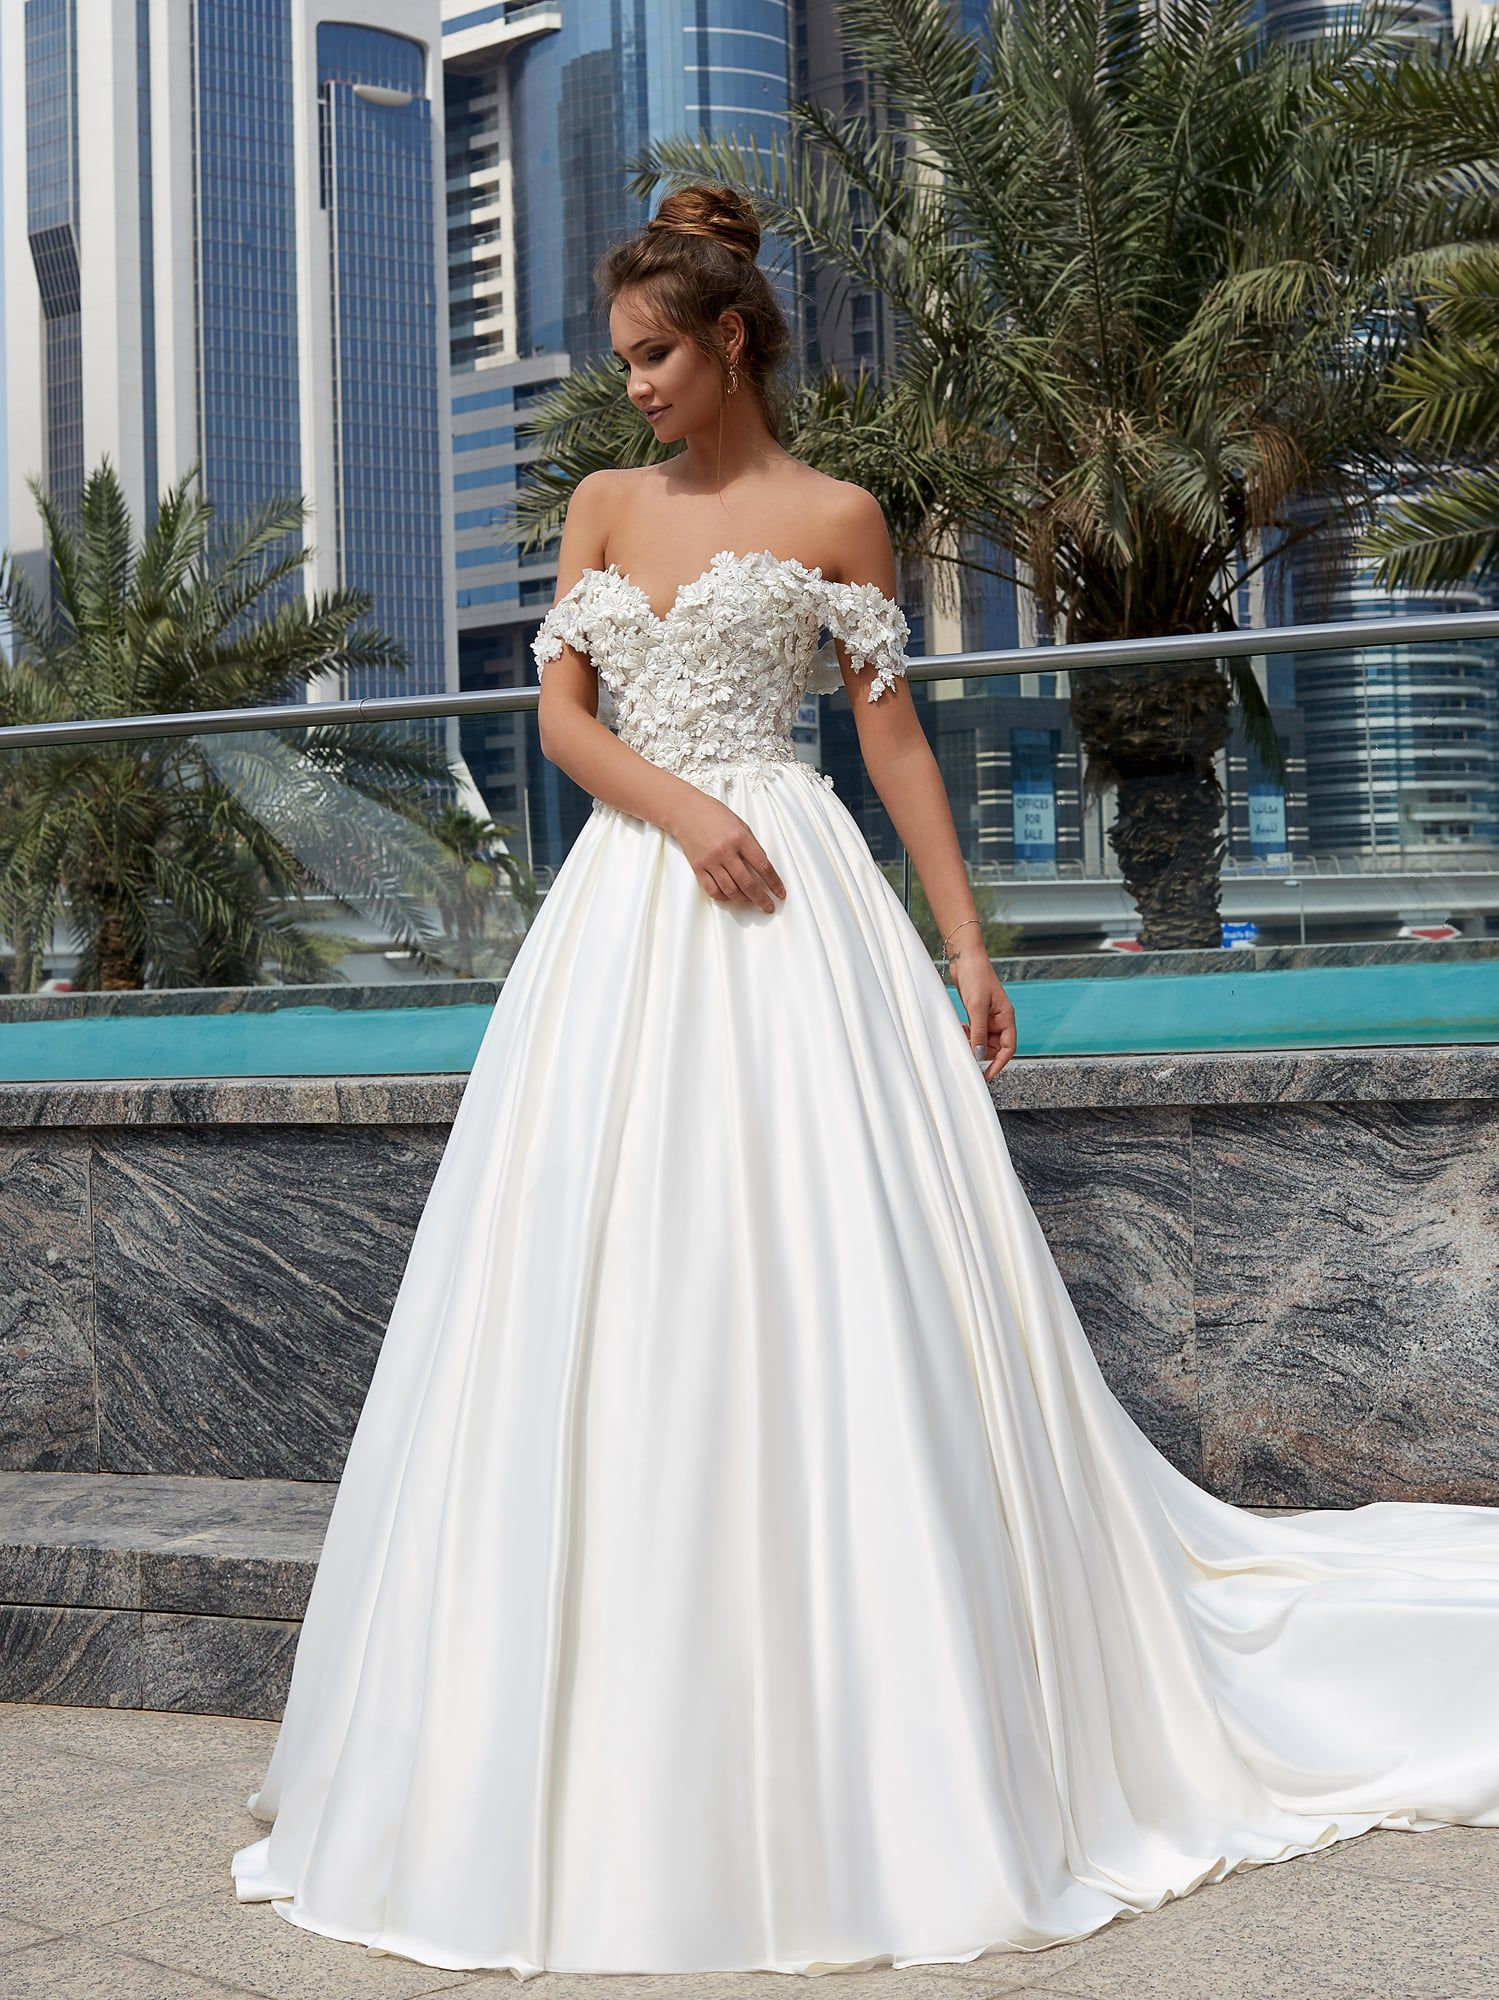 Fabriano Wedding Dress By Lanesta Couture In Charmé Gaby Bridal Gown Boutique Clearwater Fl Price 1000 00